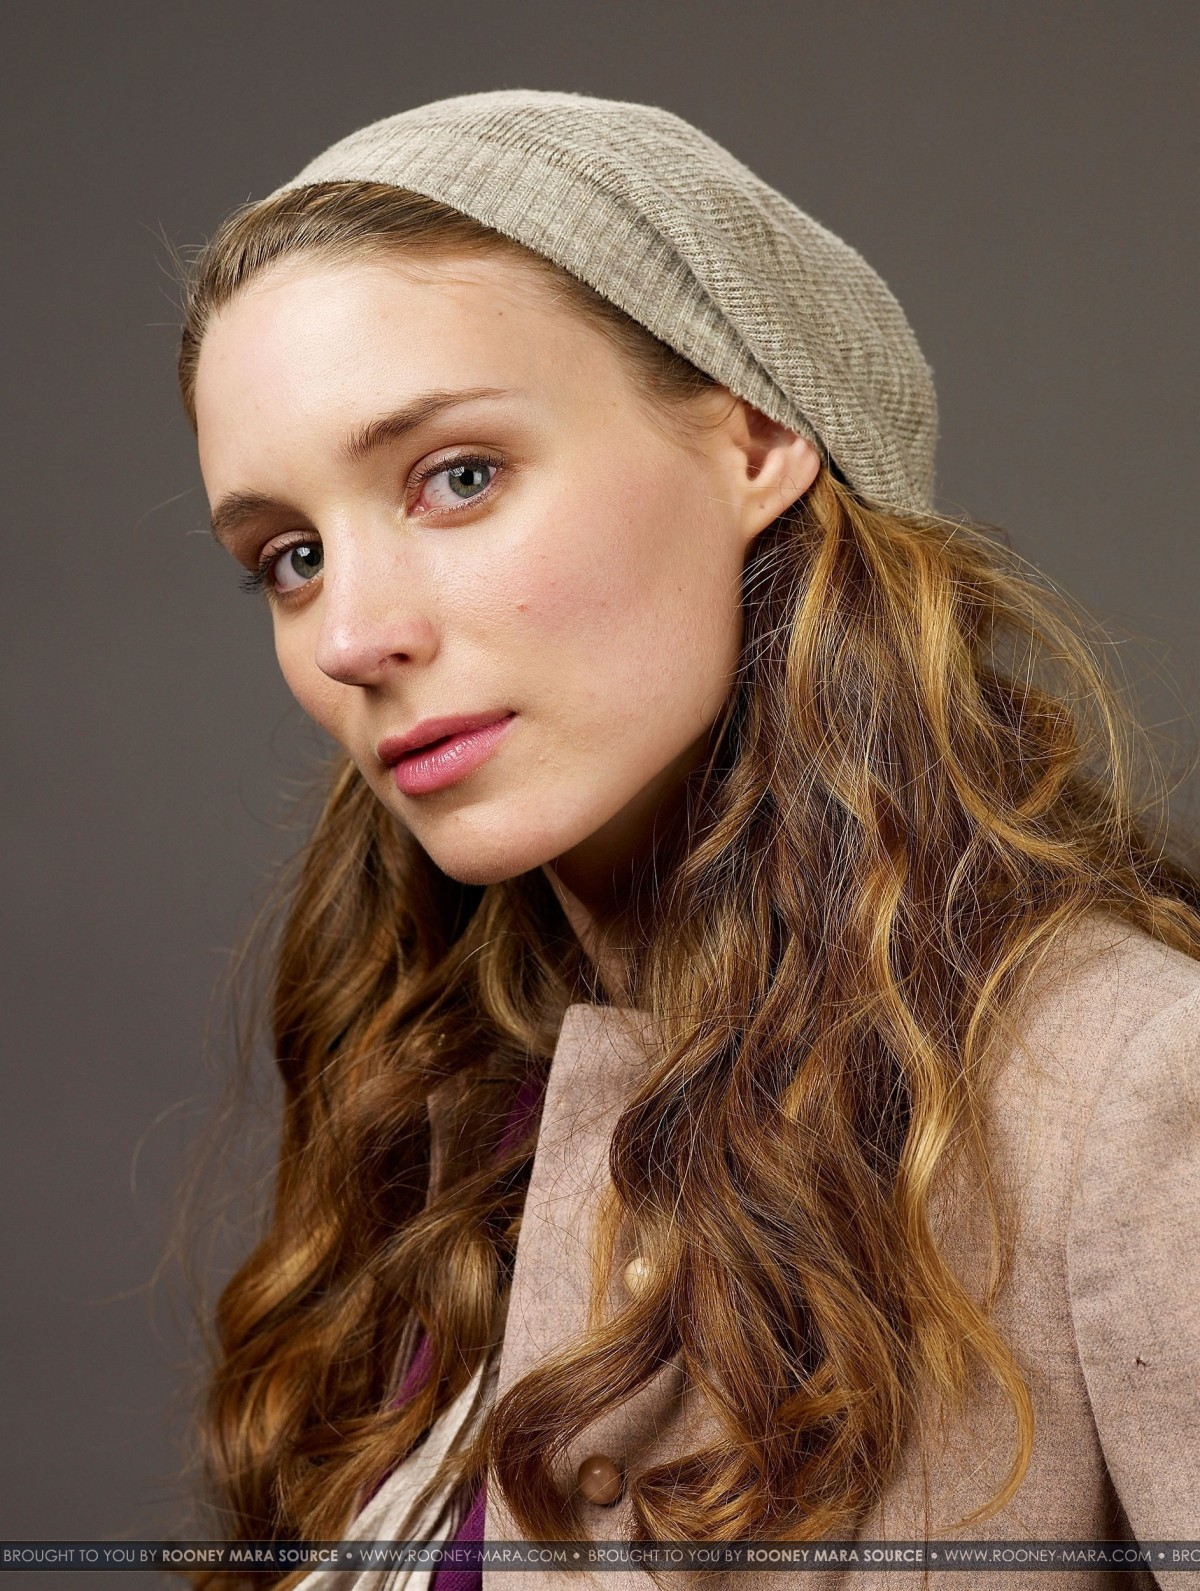 http://skyethelimit.files.wordpress.com/2011/11/sundance-film-festival-2009-rooney-mara-18097714-1885-2500.jpg?w=1200